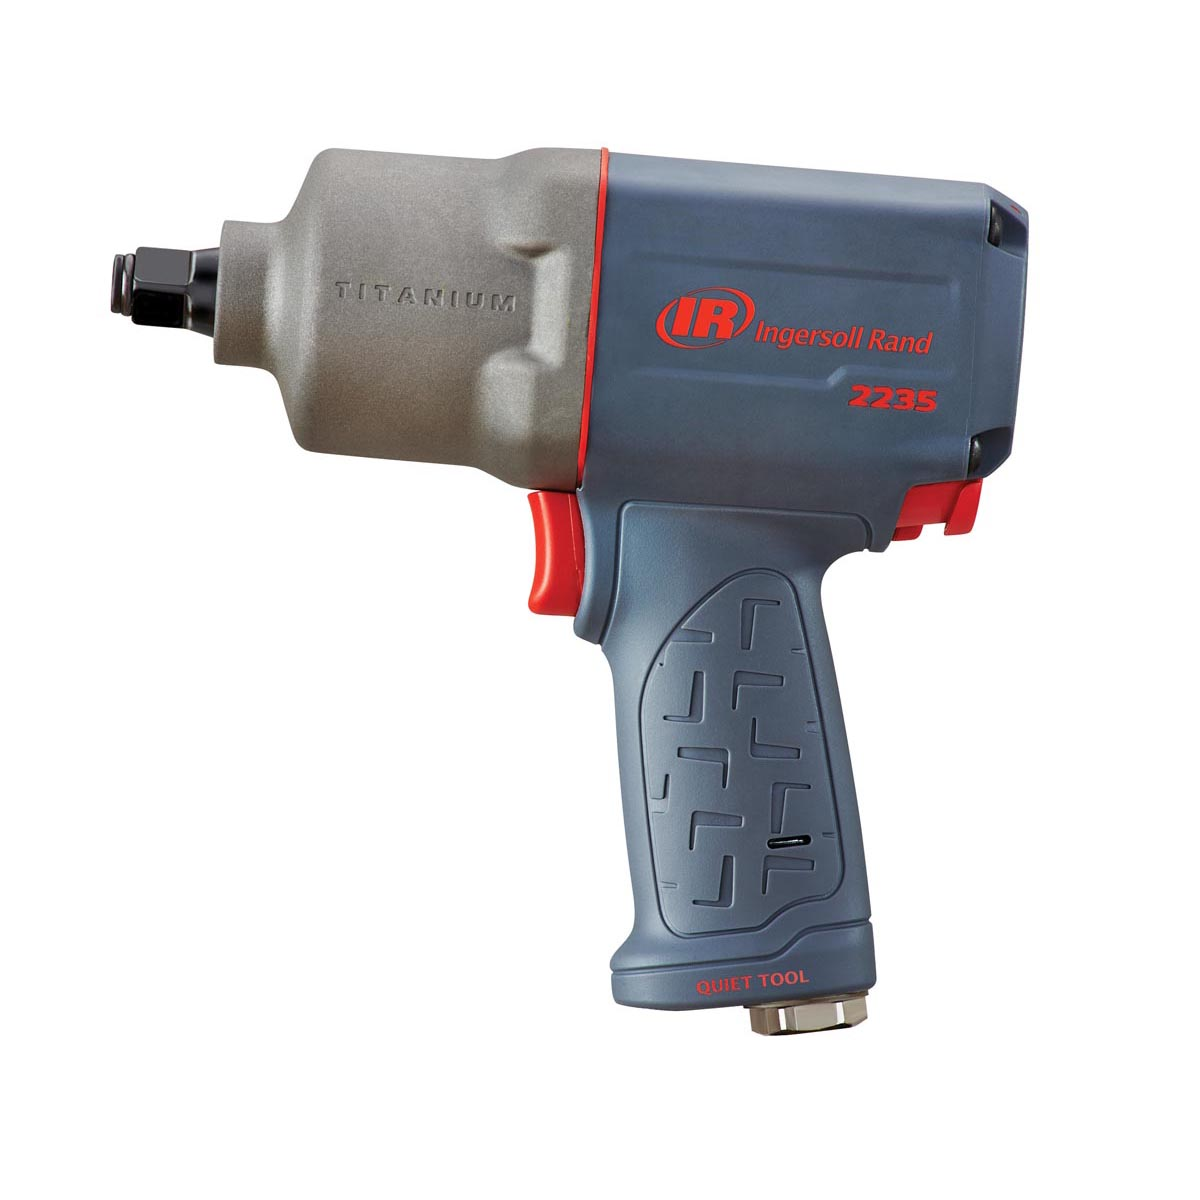 1/2-In Drive Quiet Titanium Impact Wrench - 900 Ft-Lbs Max Torque